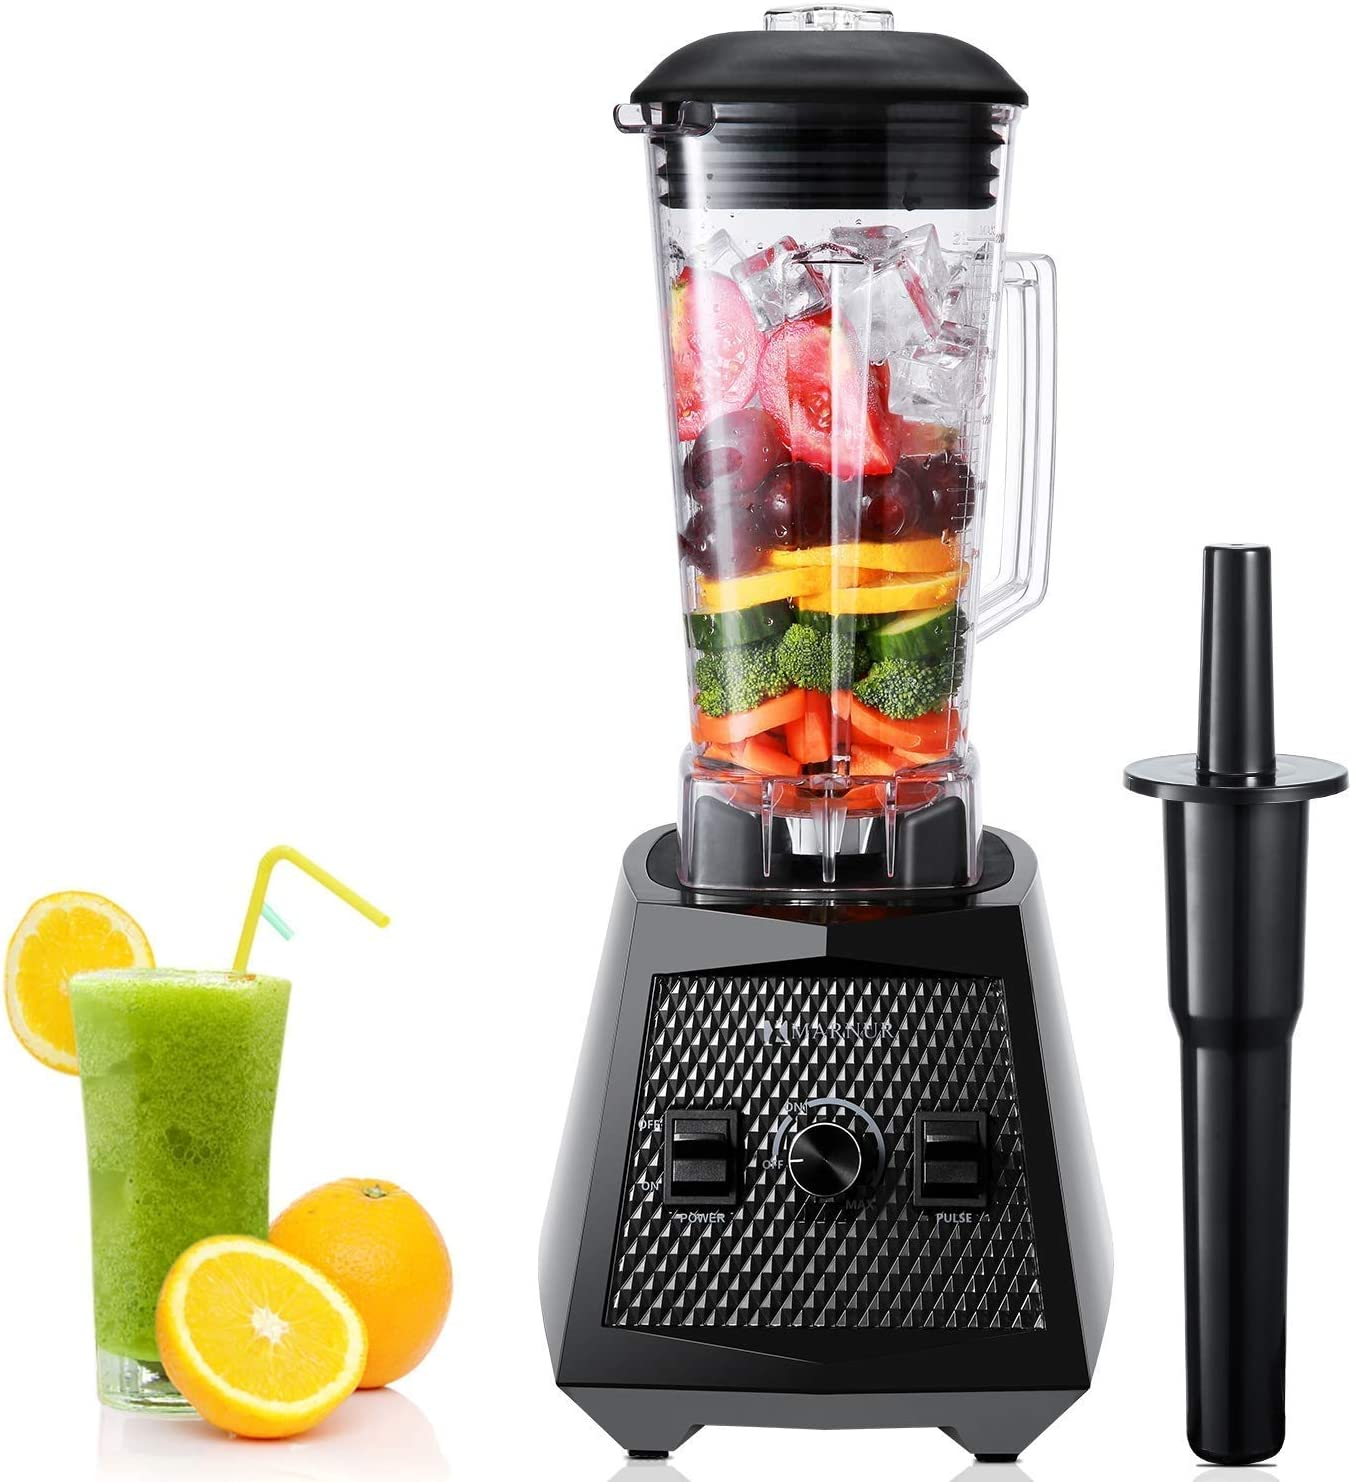 Smoothie Blenders, 1500W Smoothie Maker, 2L Commercial Blender, High Speed Jug Blender Machine 28000 RPM, Mufti-Function Ice Blender with Stepless Speed Adjustment, 8 Sharp Blades